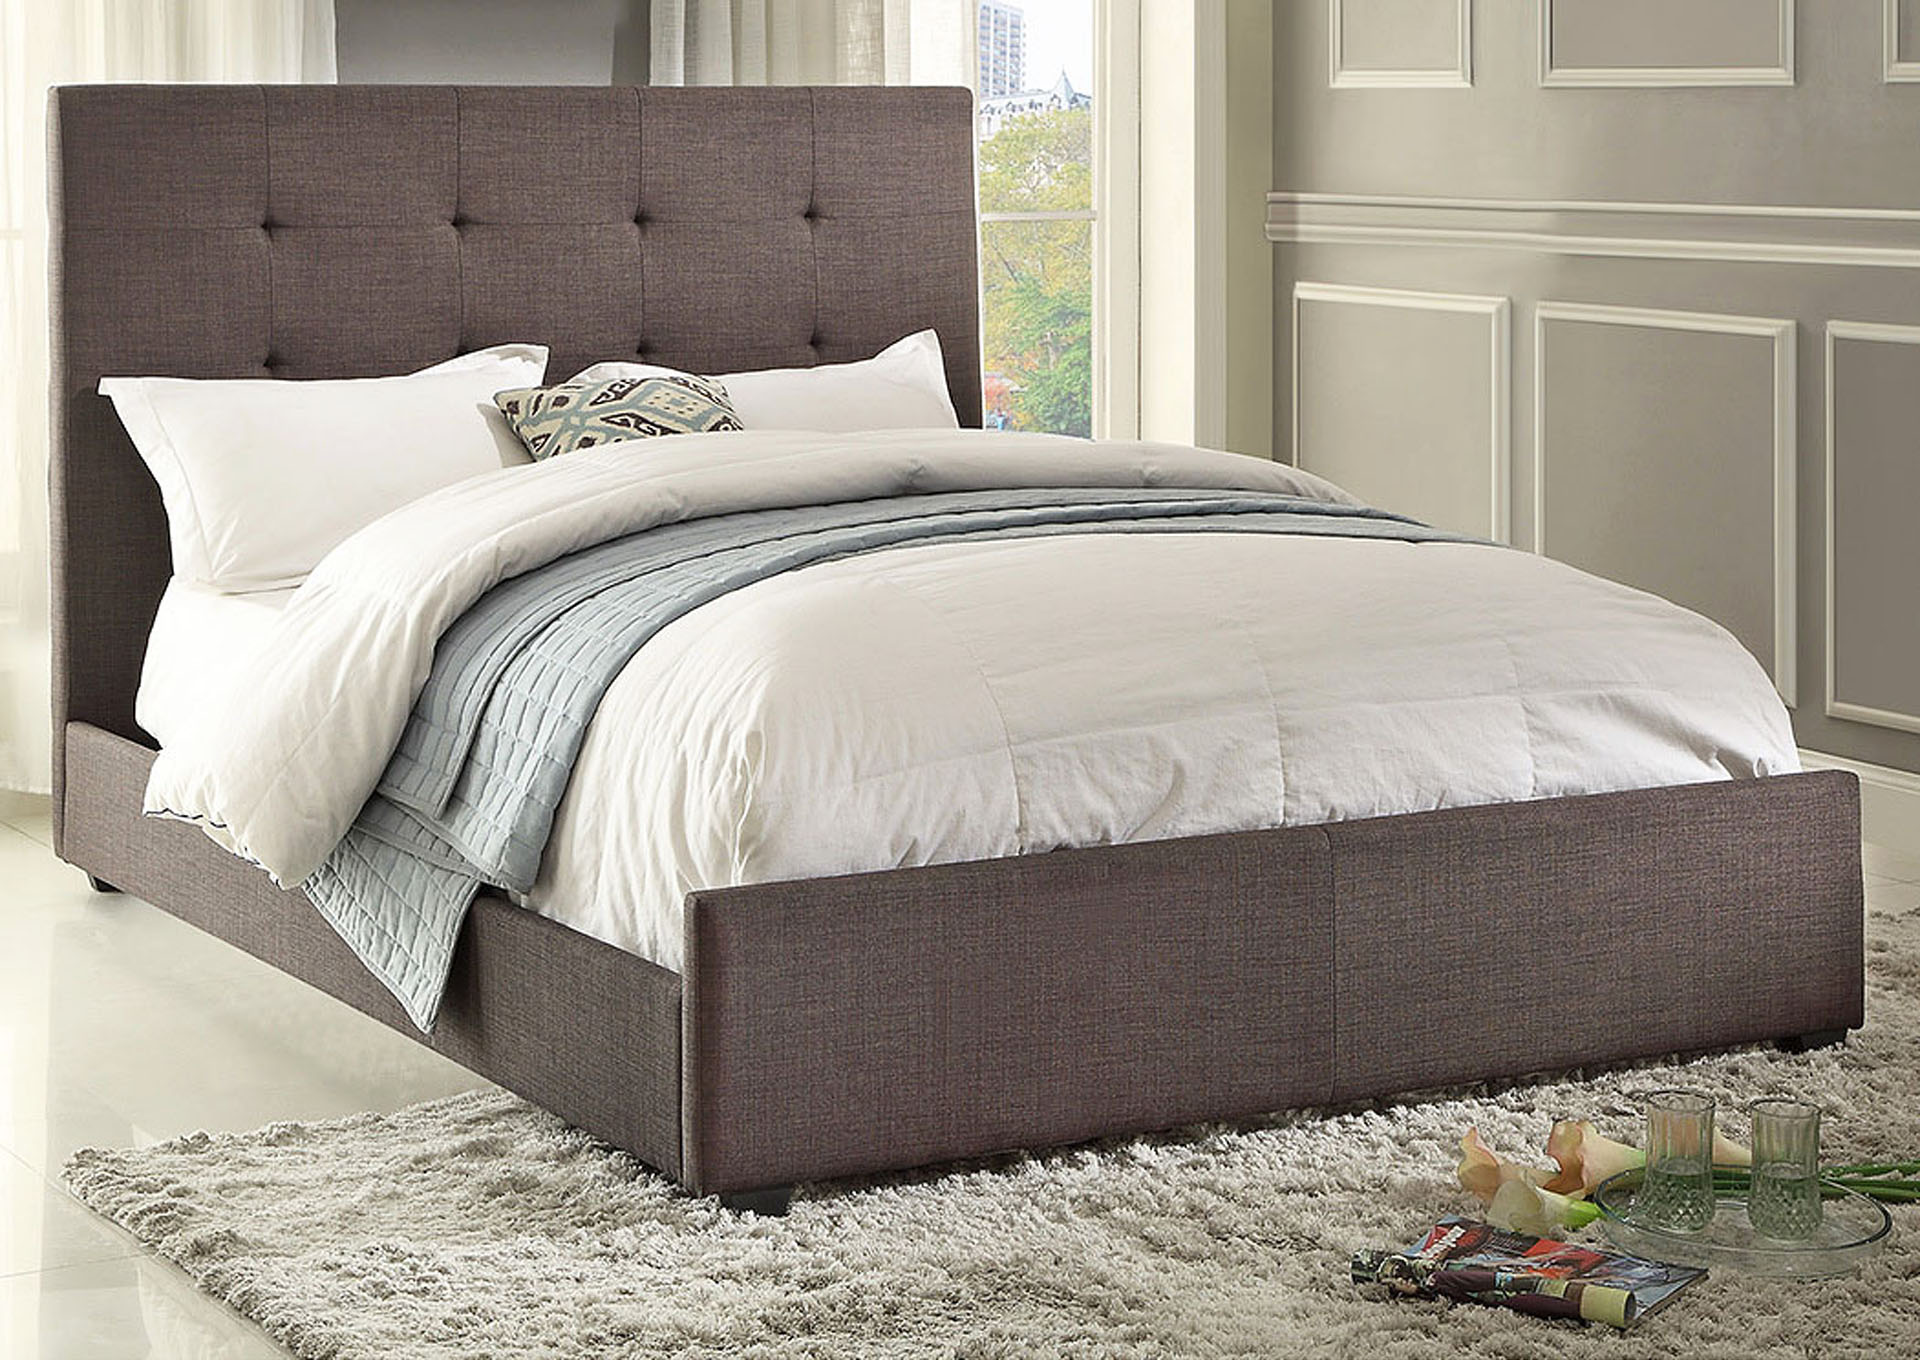 Cadmus Dark Gray Upholstered California King Bed,Homelegance